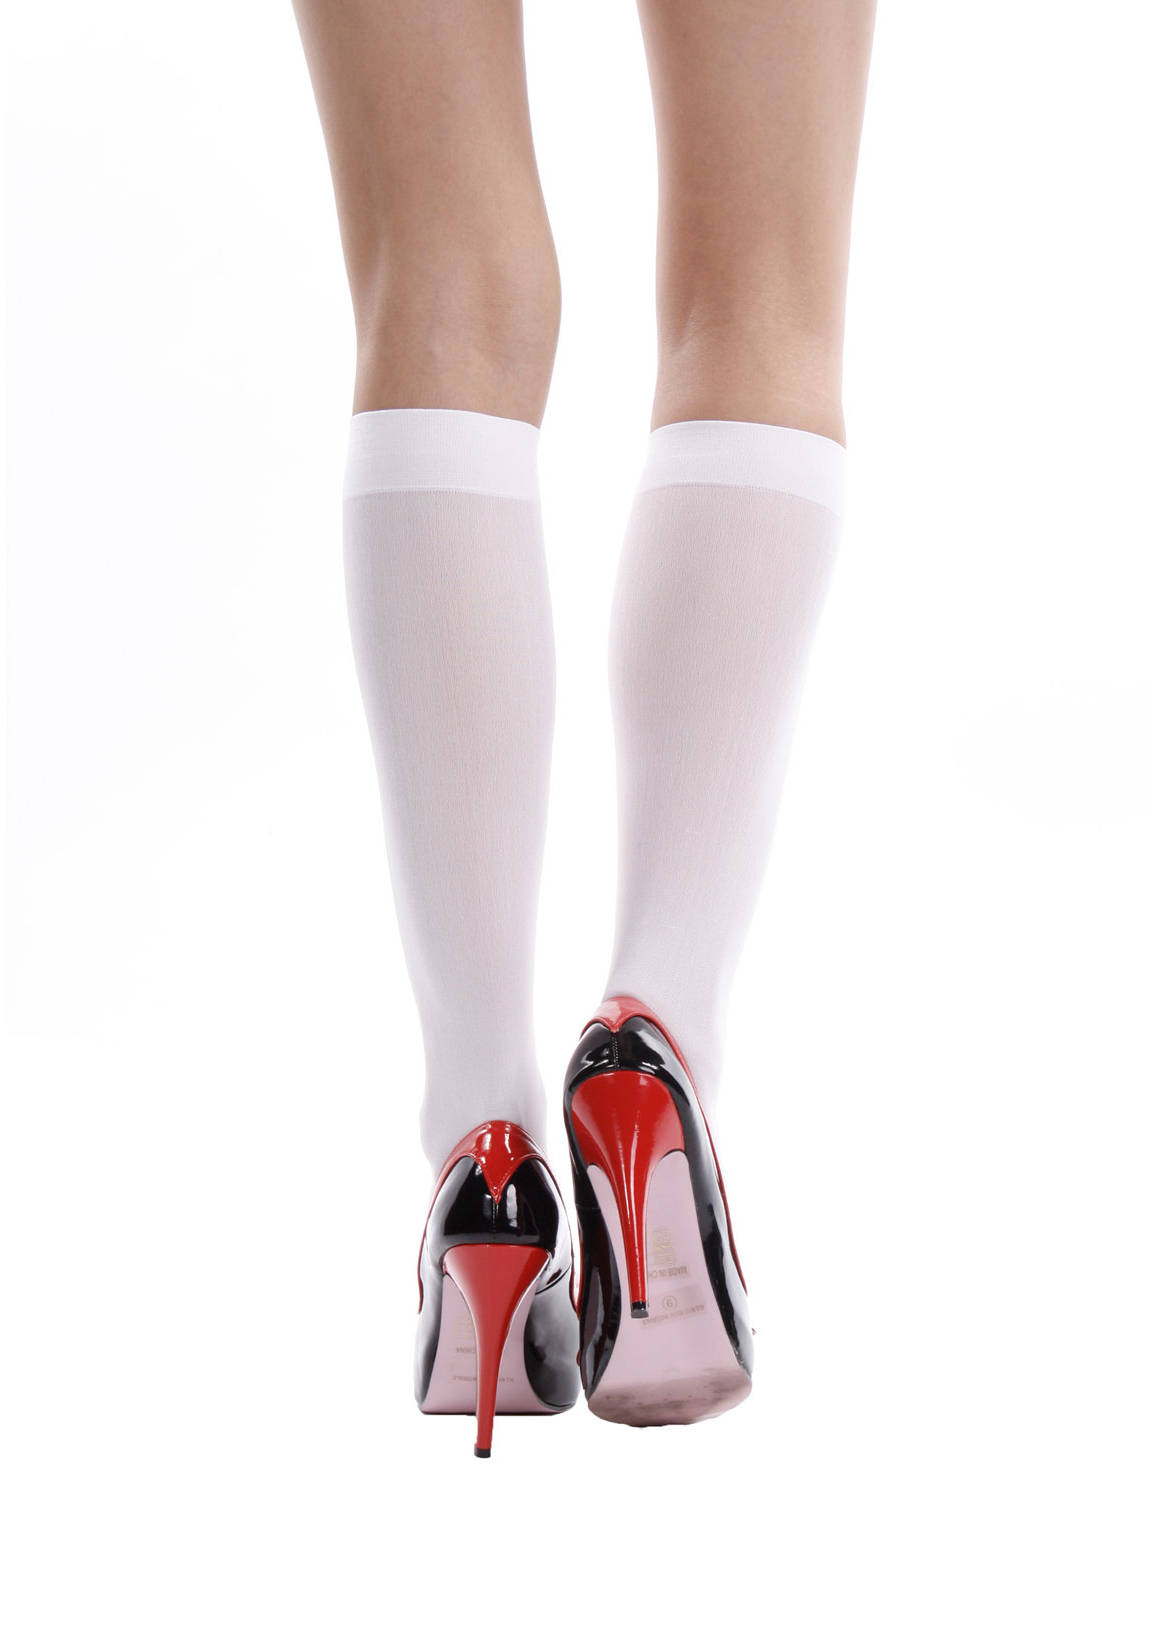 Find great deals on eBay for knee high socks nylon. Shop with confidence.